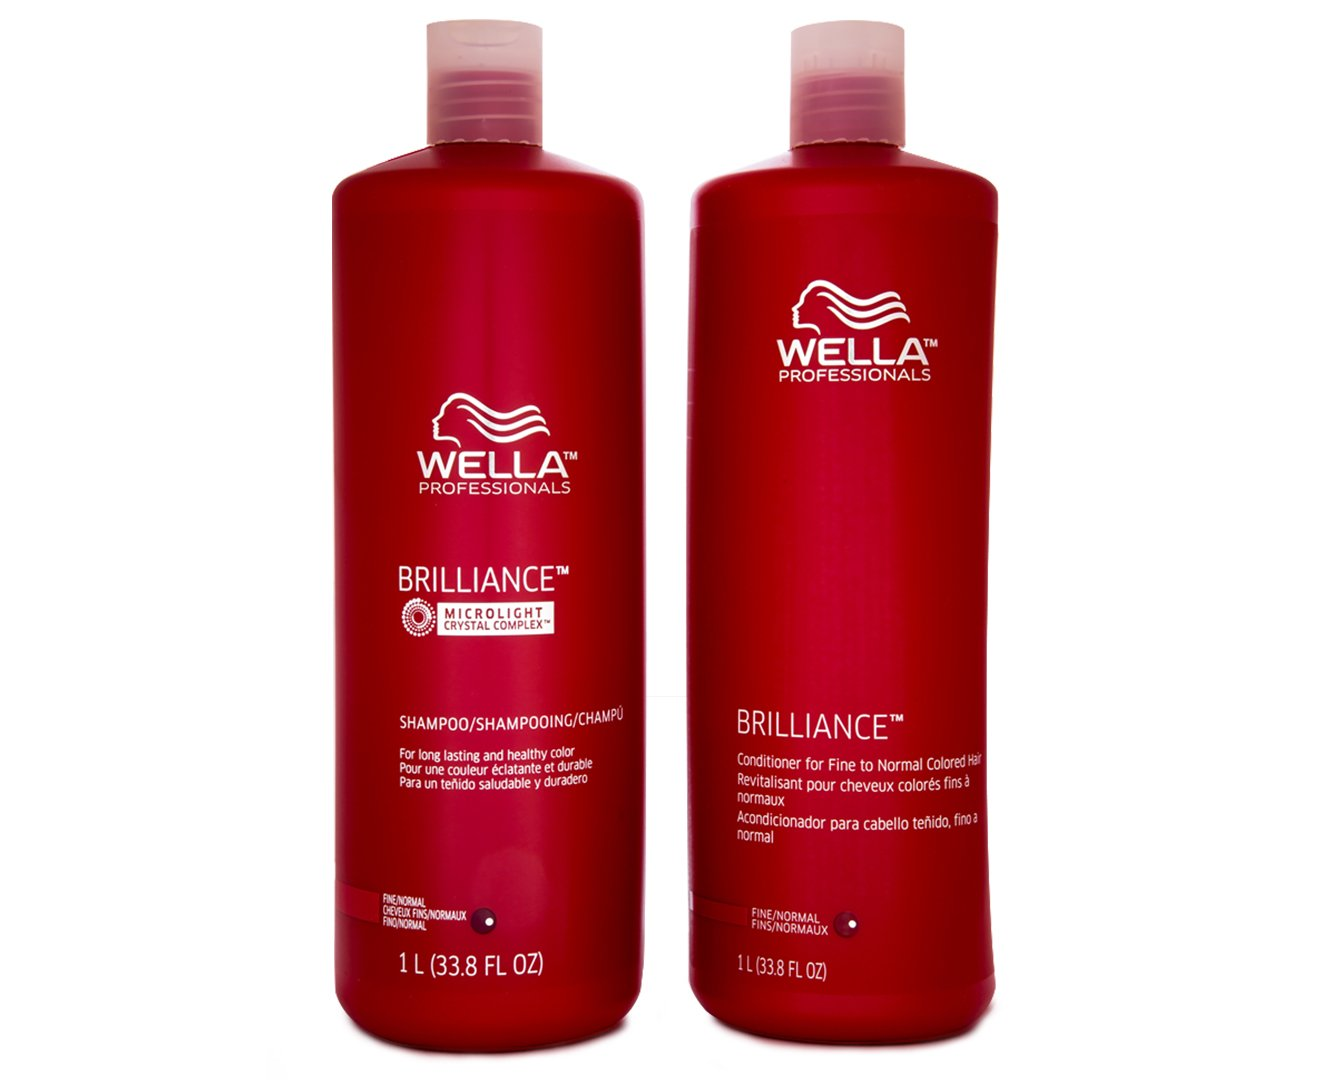 Wella Brilliance Shampoo and Conditioner Liter Duo for ...